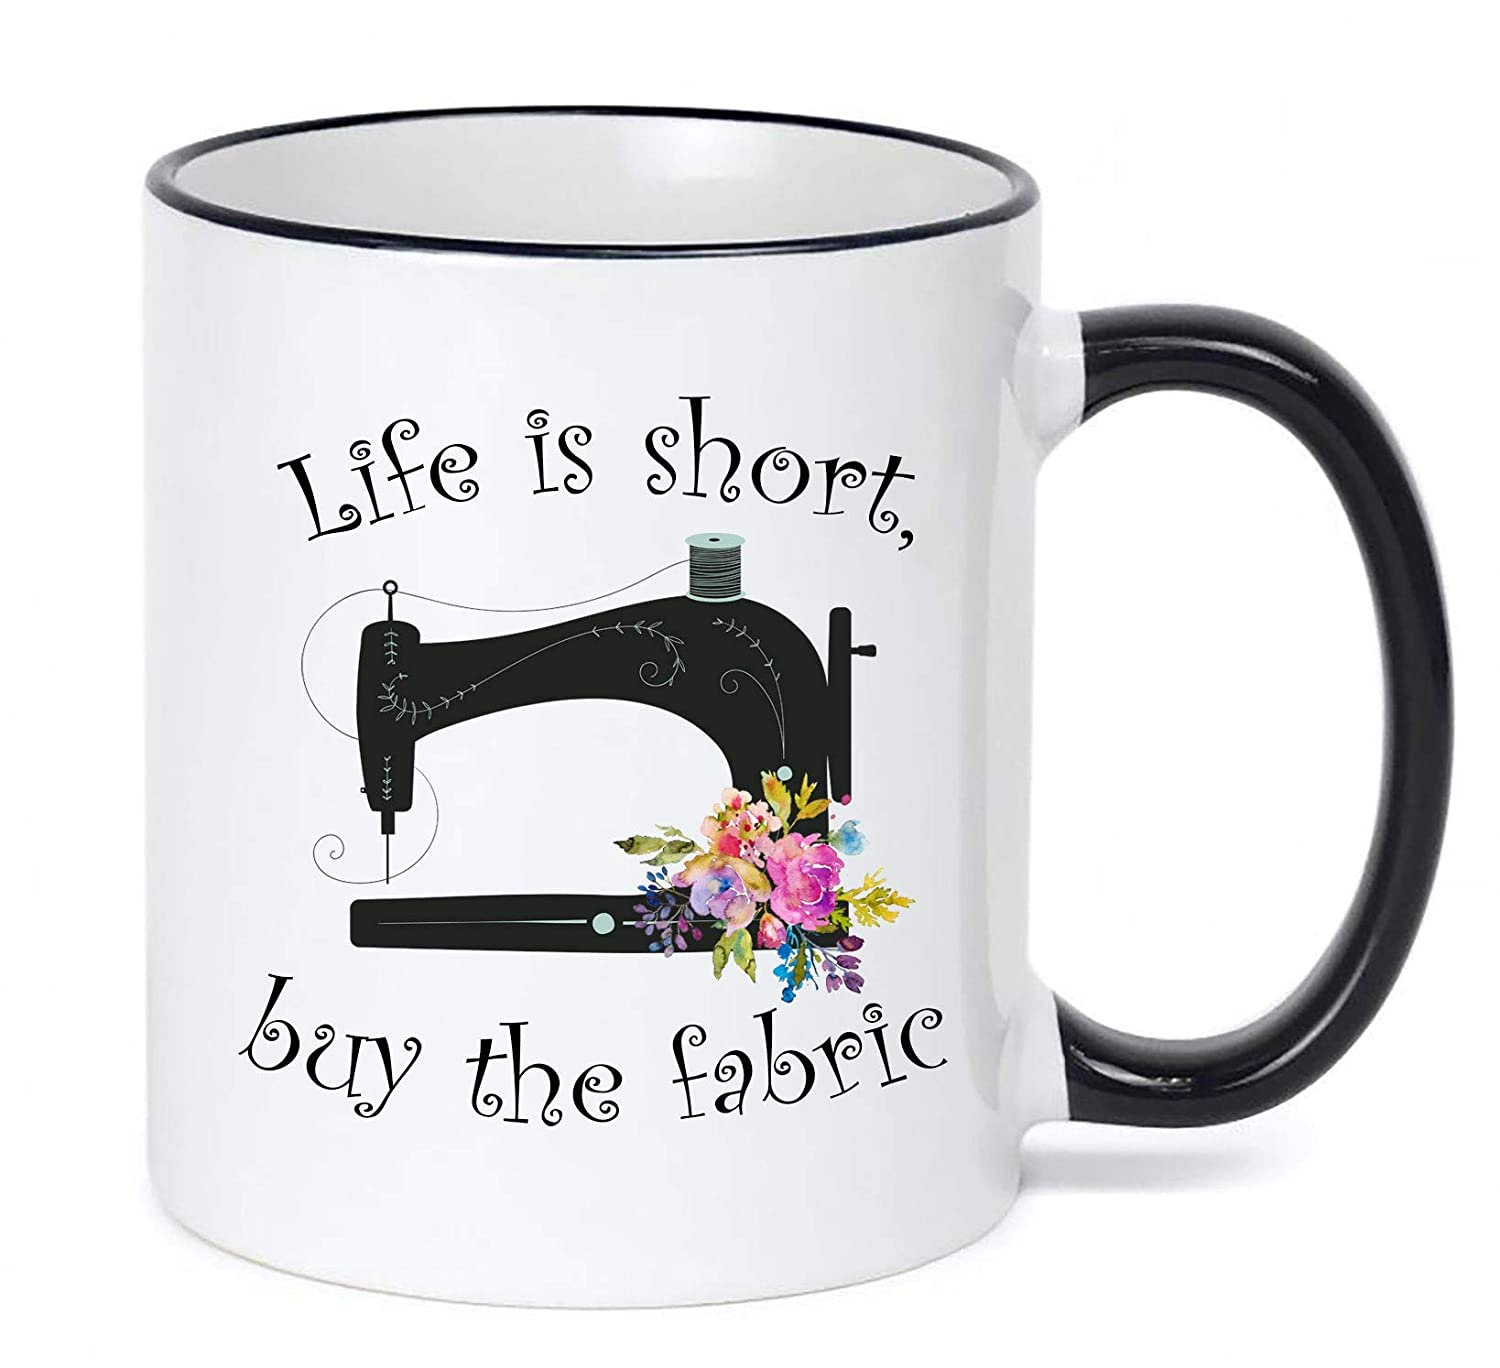 Sewing Mug Life Is 70% OFF Outlet Short Buy Max 40% OFF Fabric the